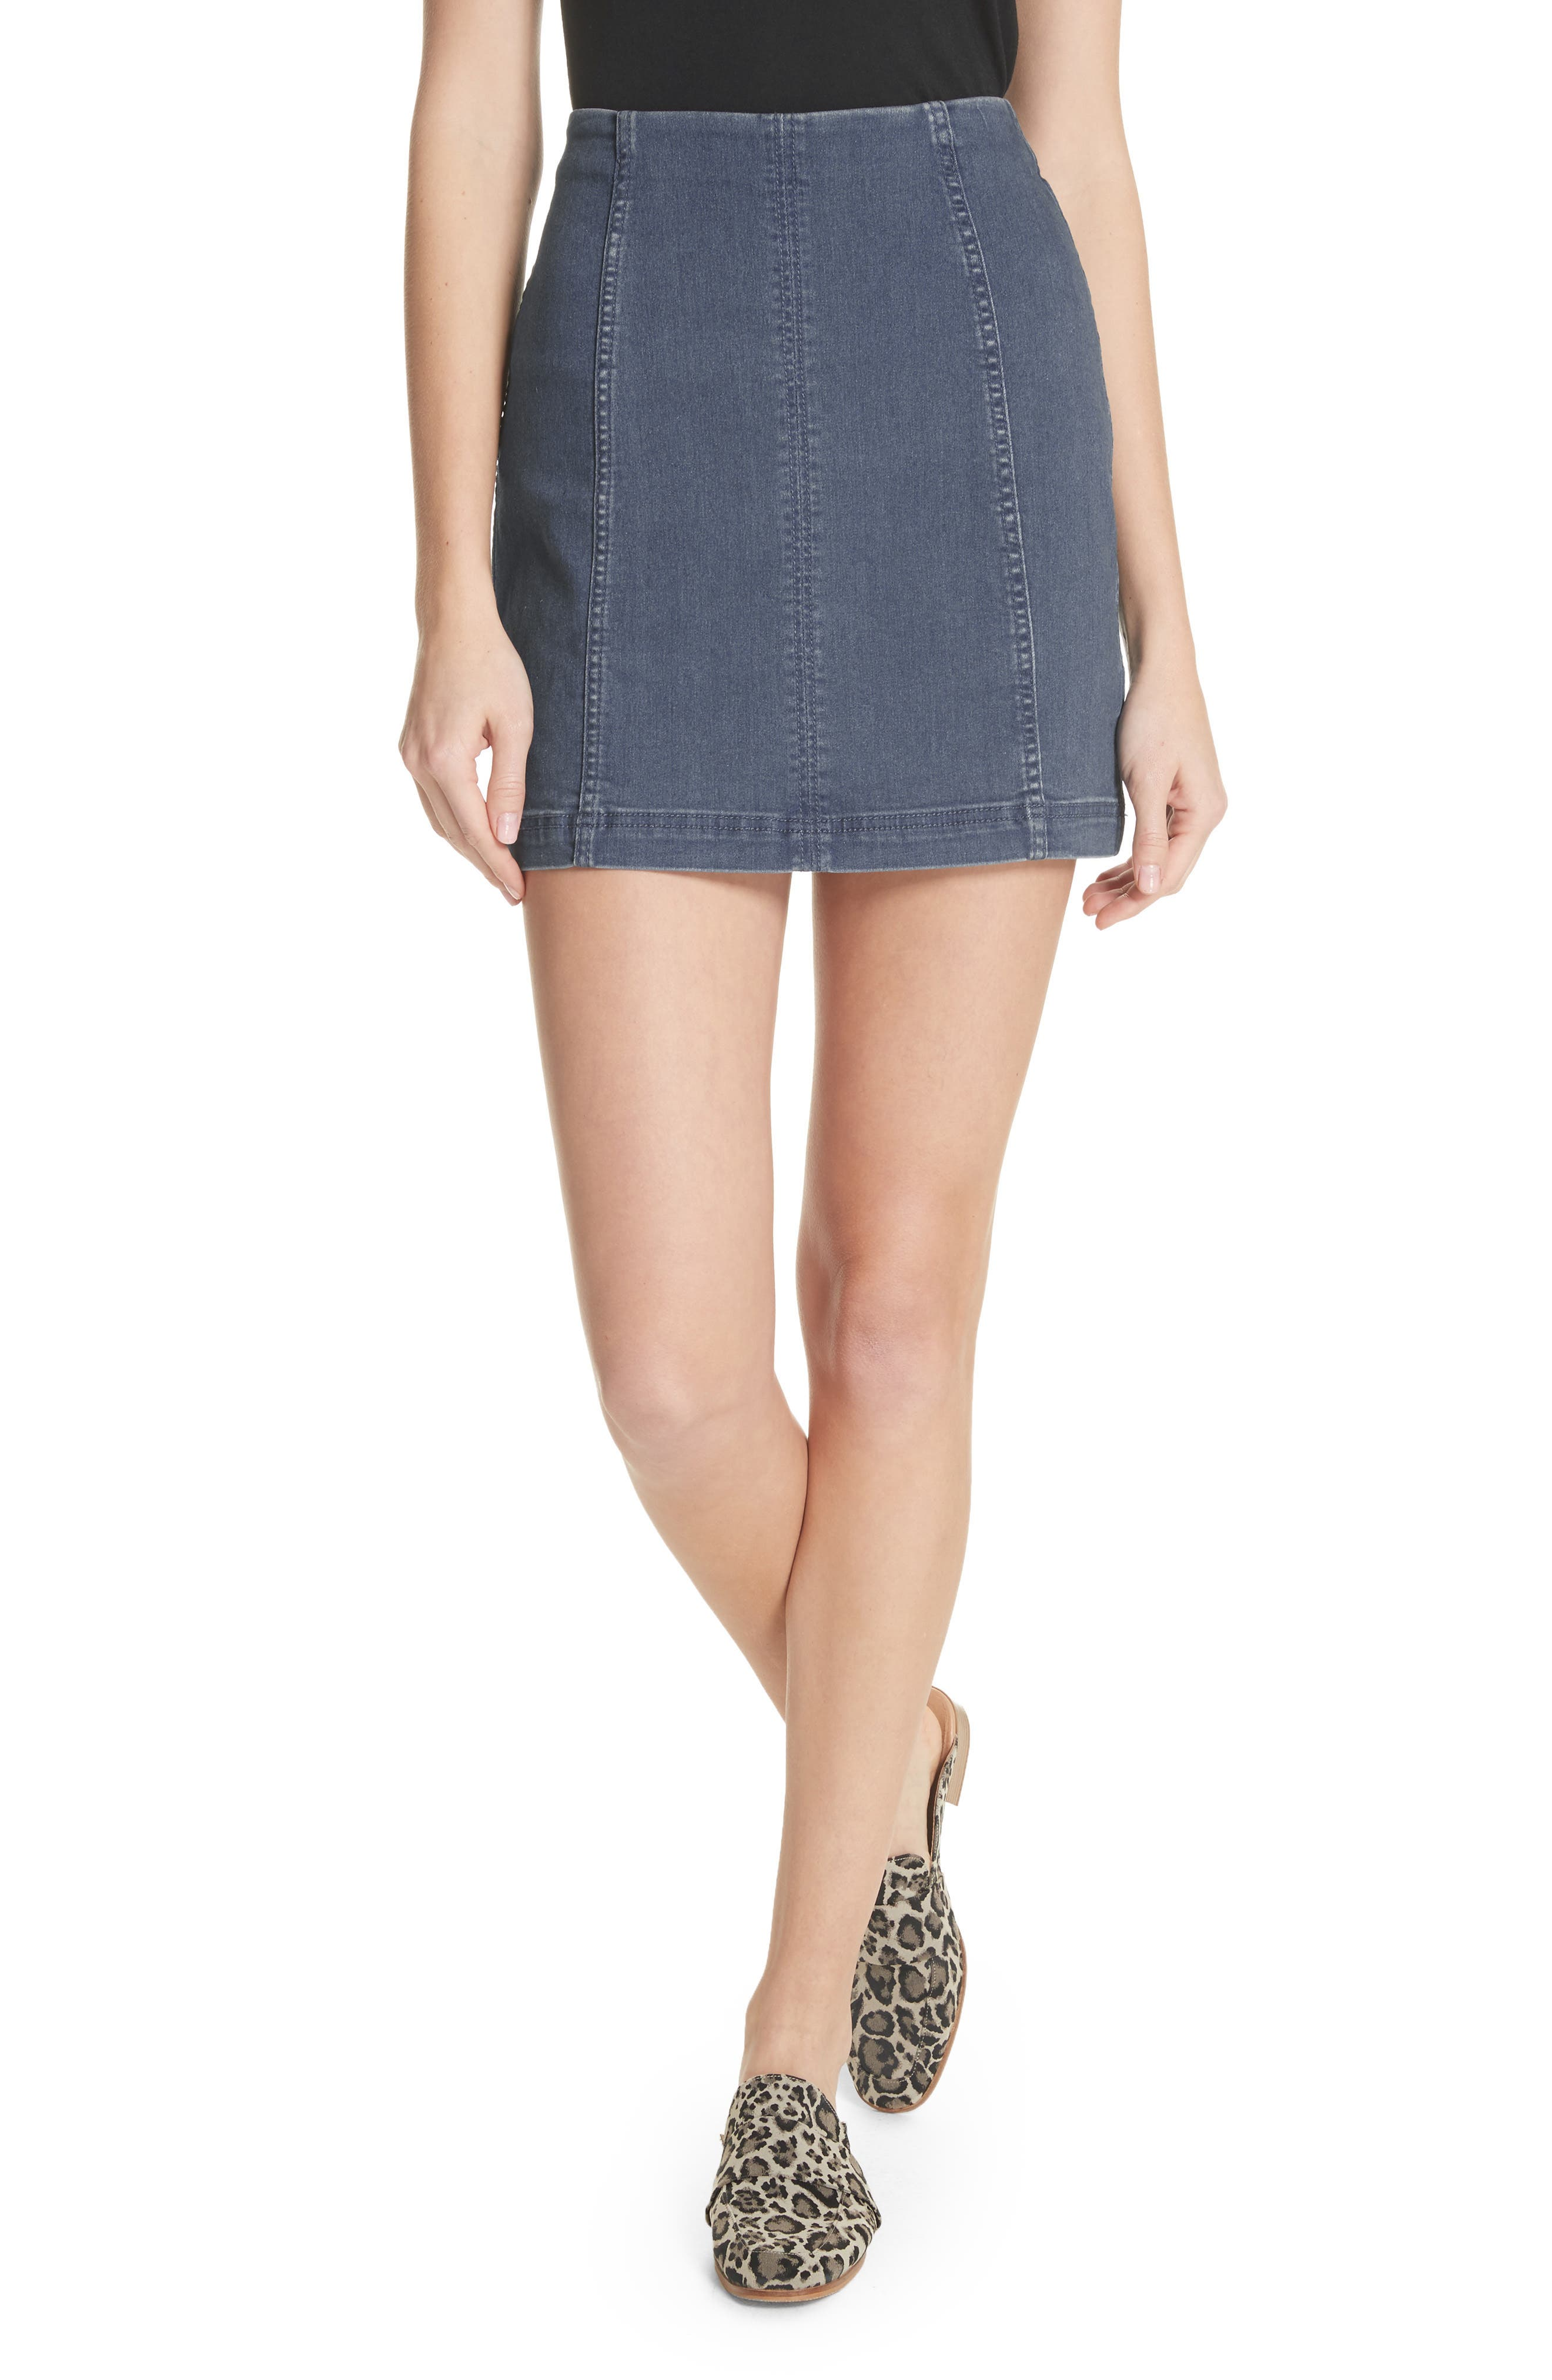 FREE PEOPLE We the Free by Free People Modern Denim Miniskirt, Main, color, 400